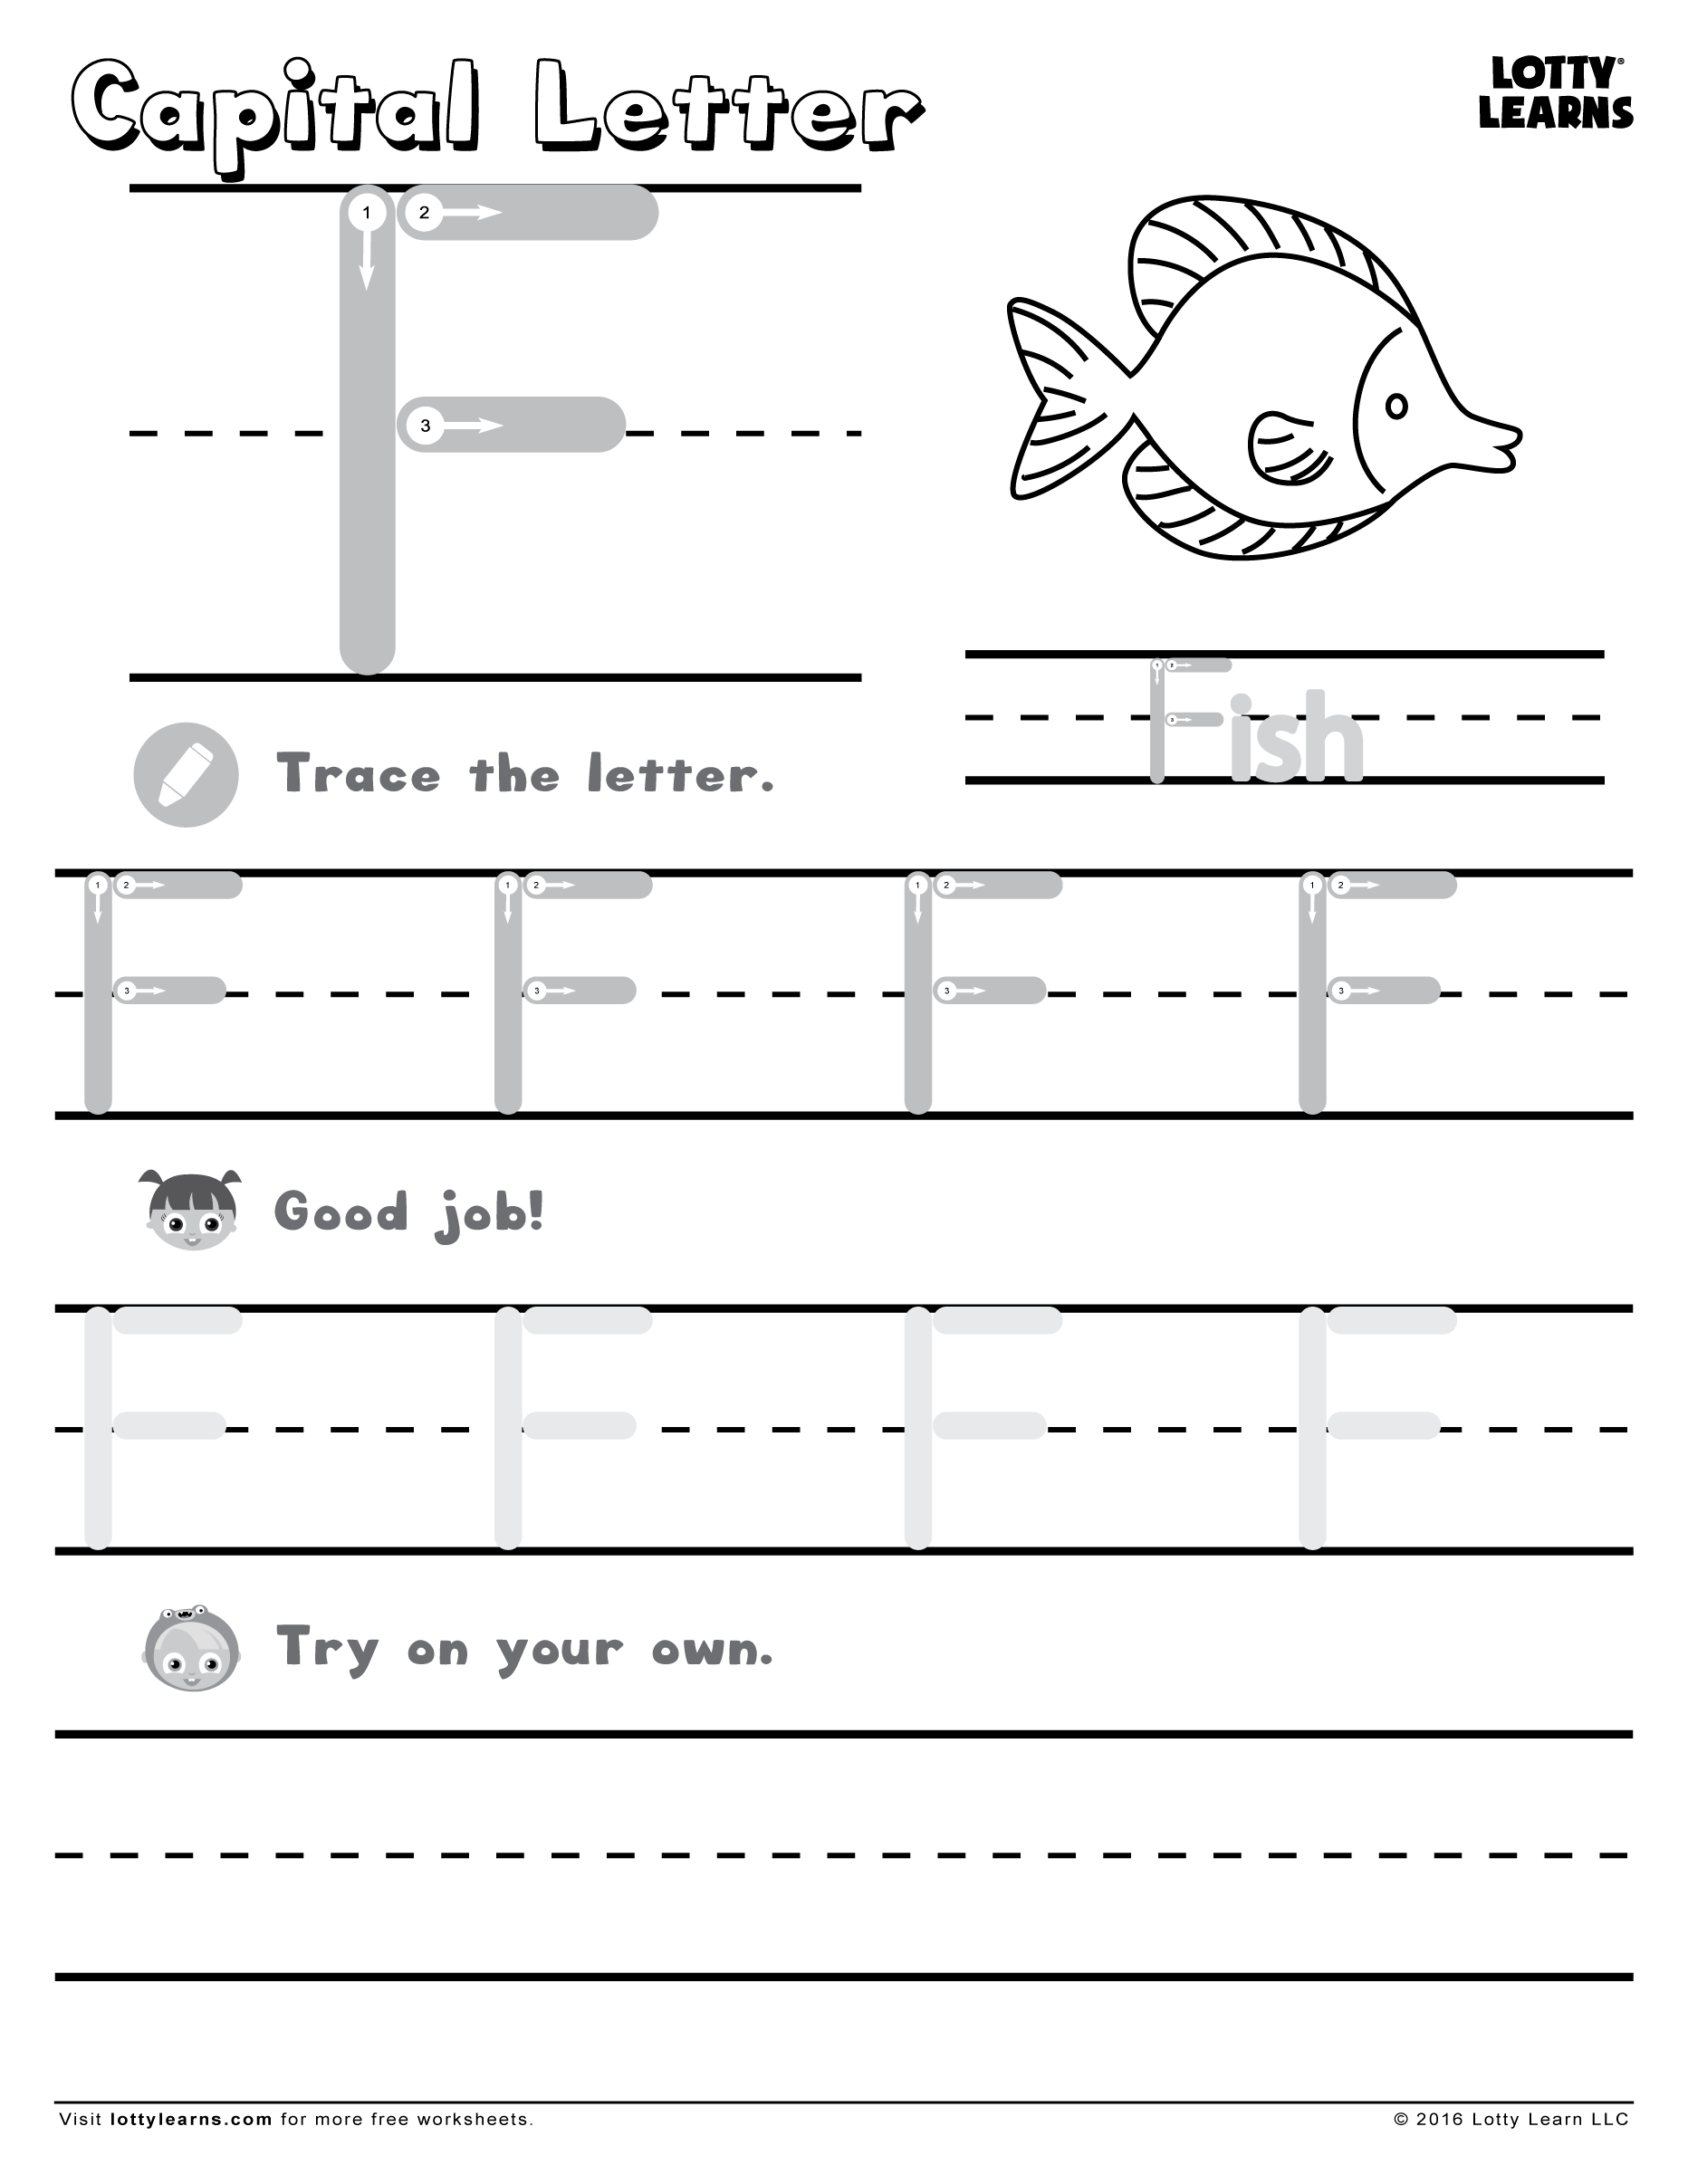 Capital Letter F Lotty Learns – Capital Letter Worksheets for Kindergarten